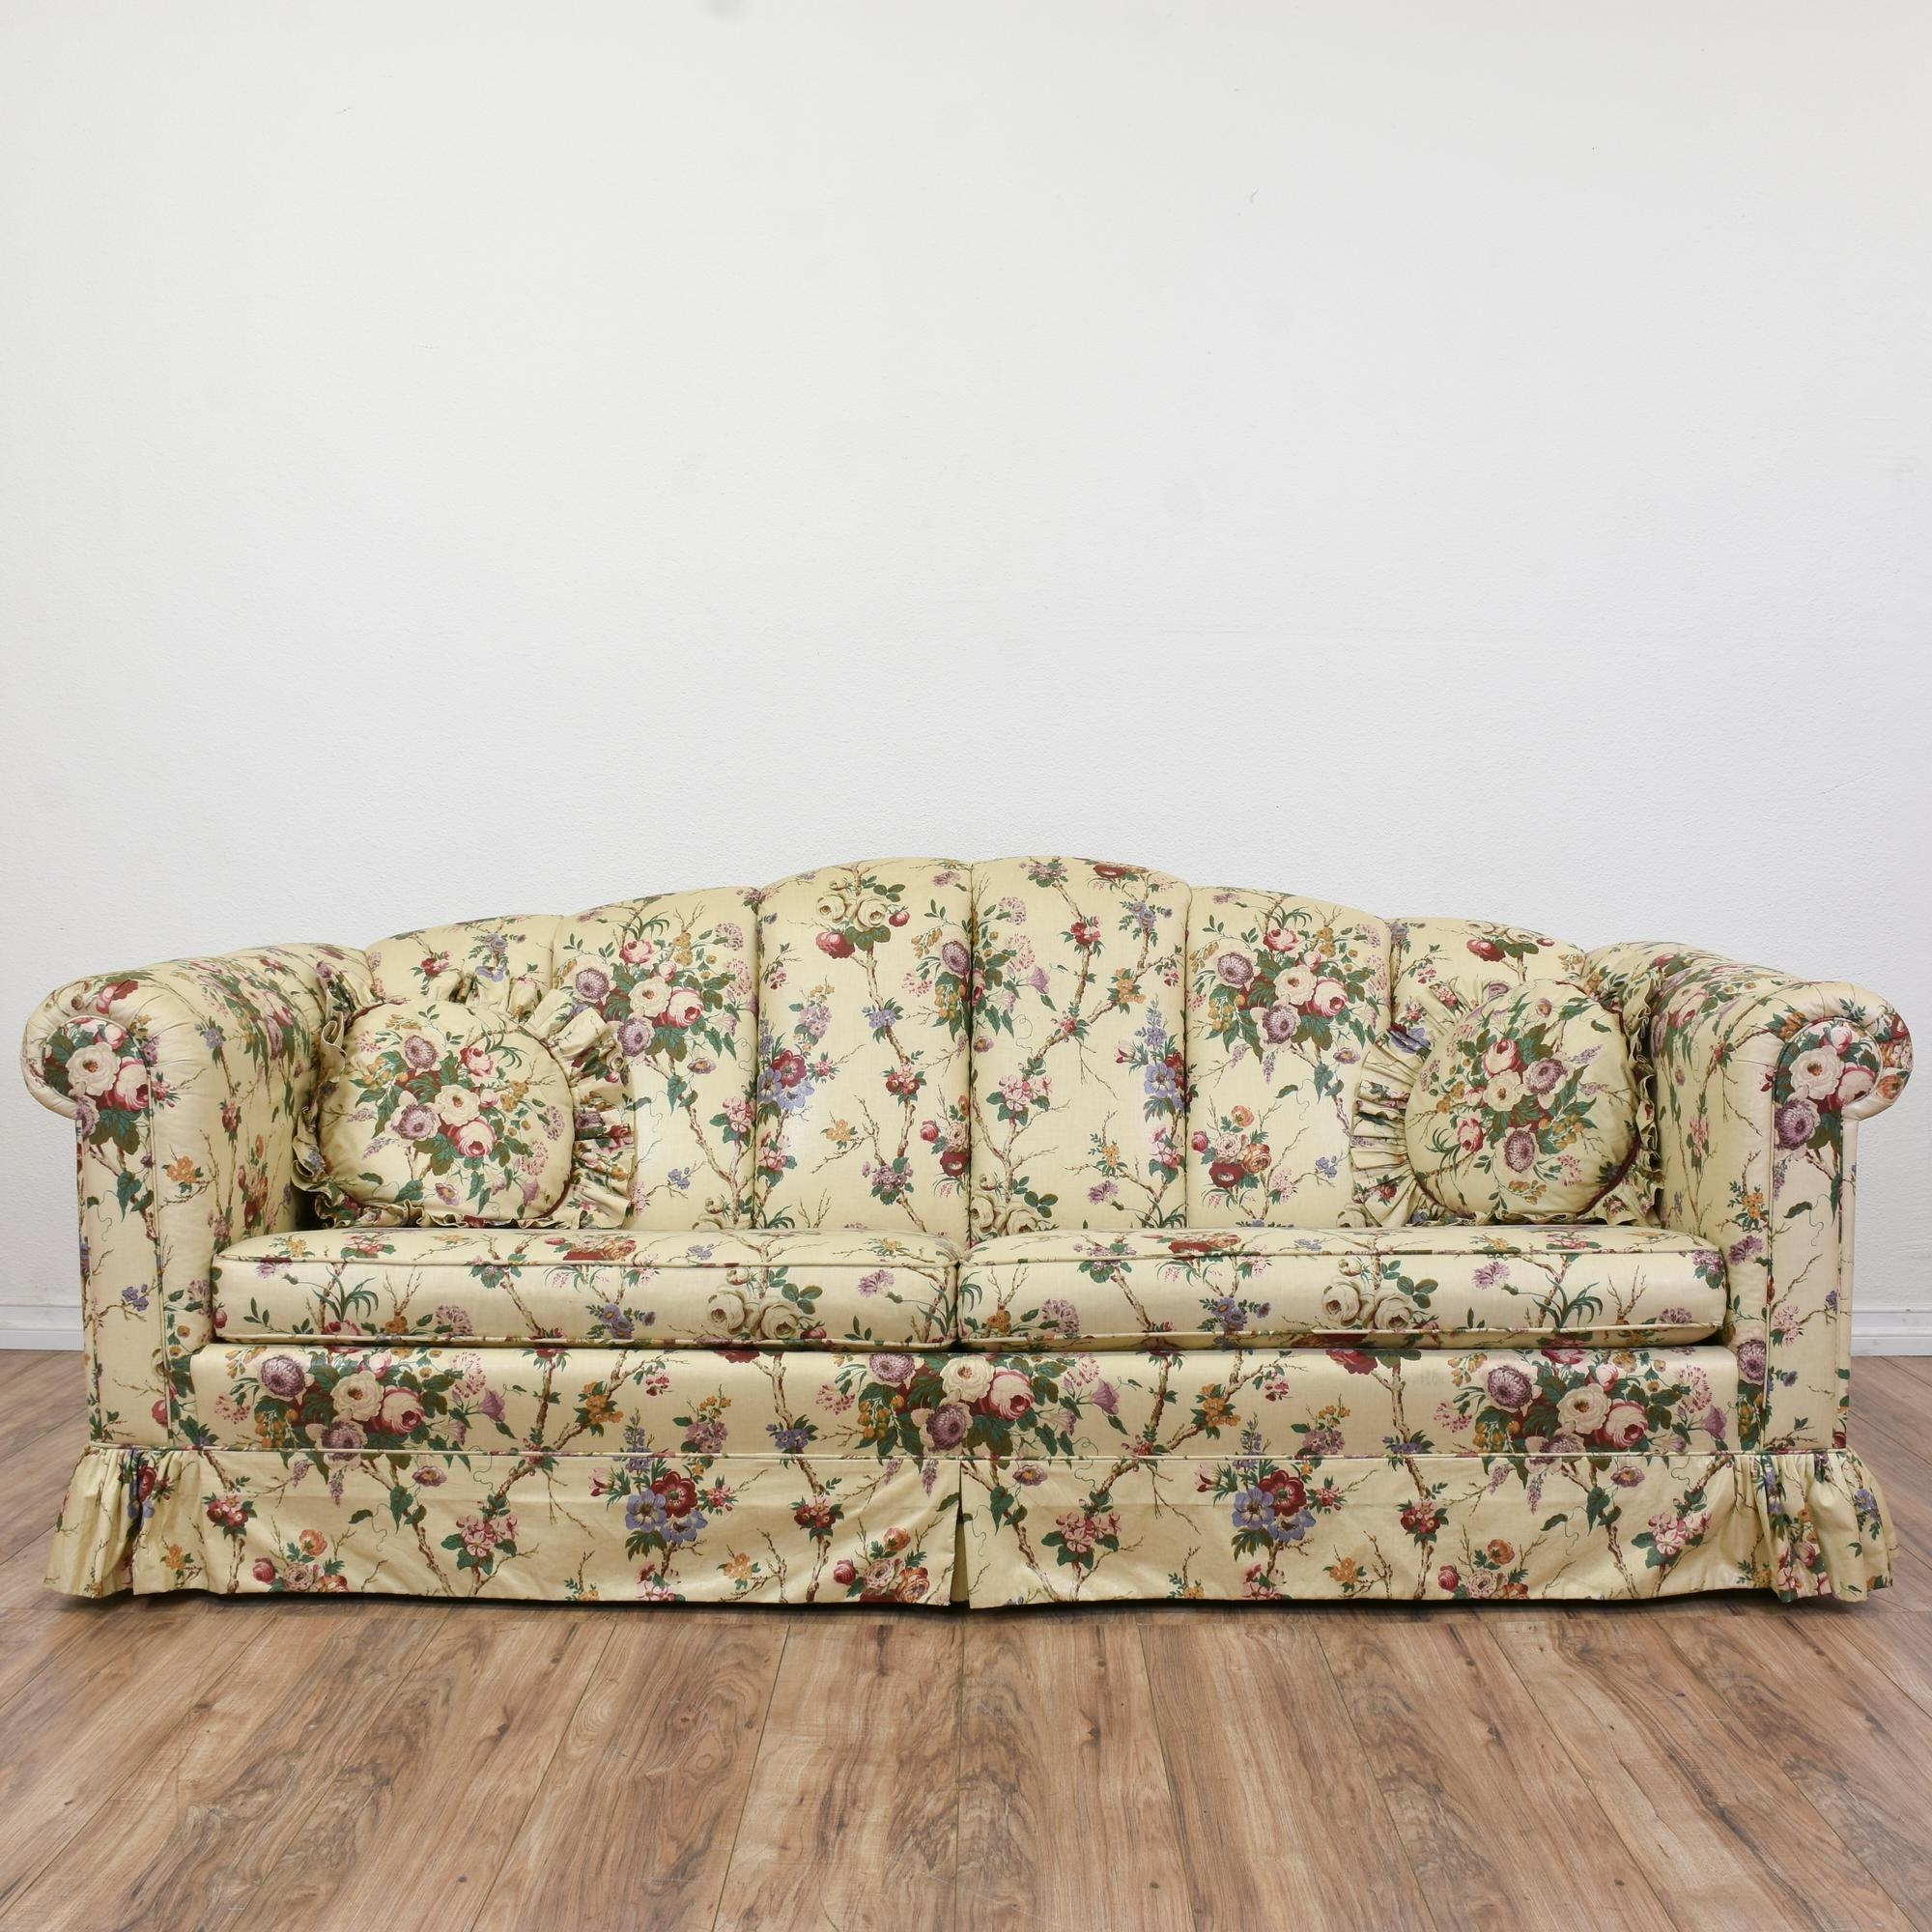 Floral Liberty Chintz Print Sofa Long Sofa Country Sofas And Pertaining To Chintz Sofas And Chairs (Image 6 of 15)